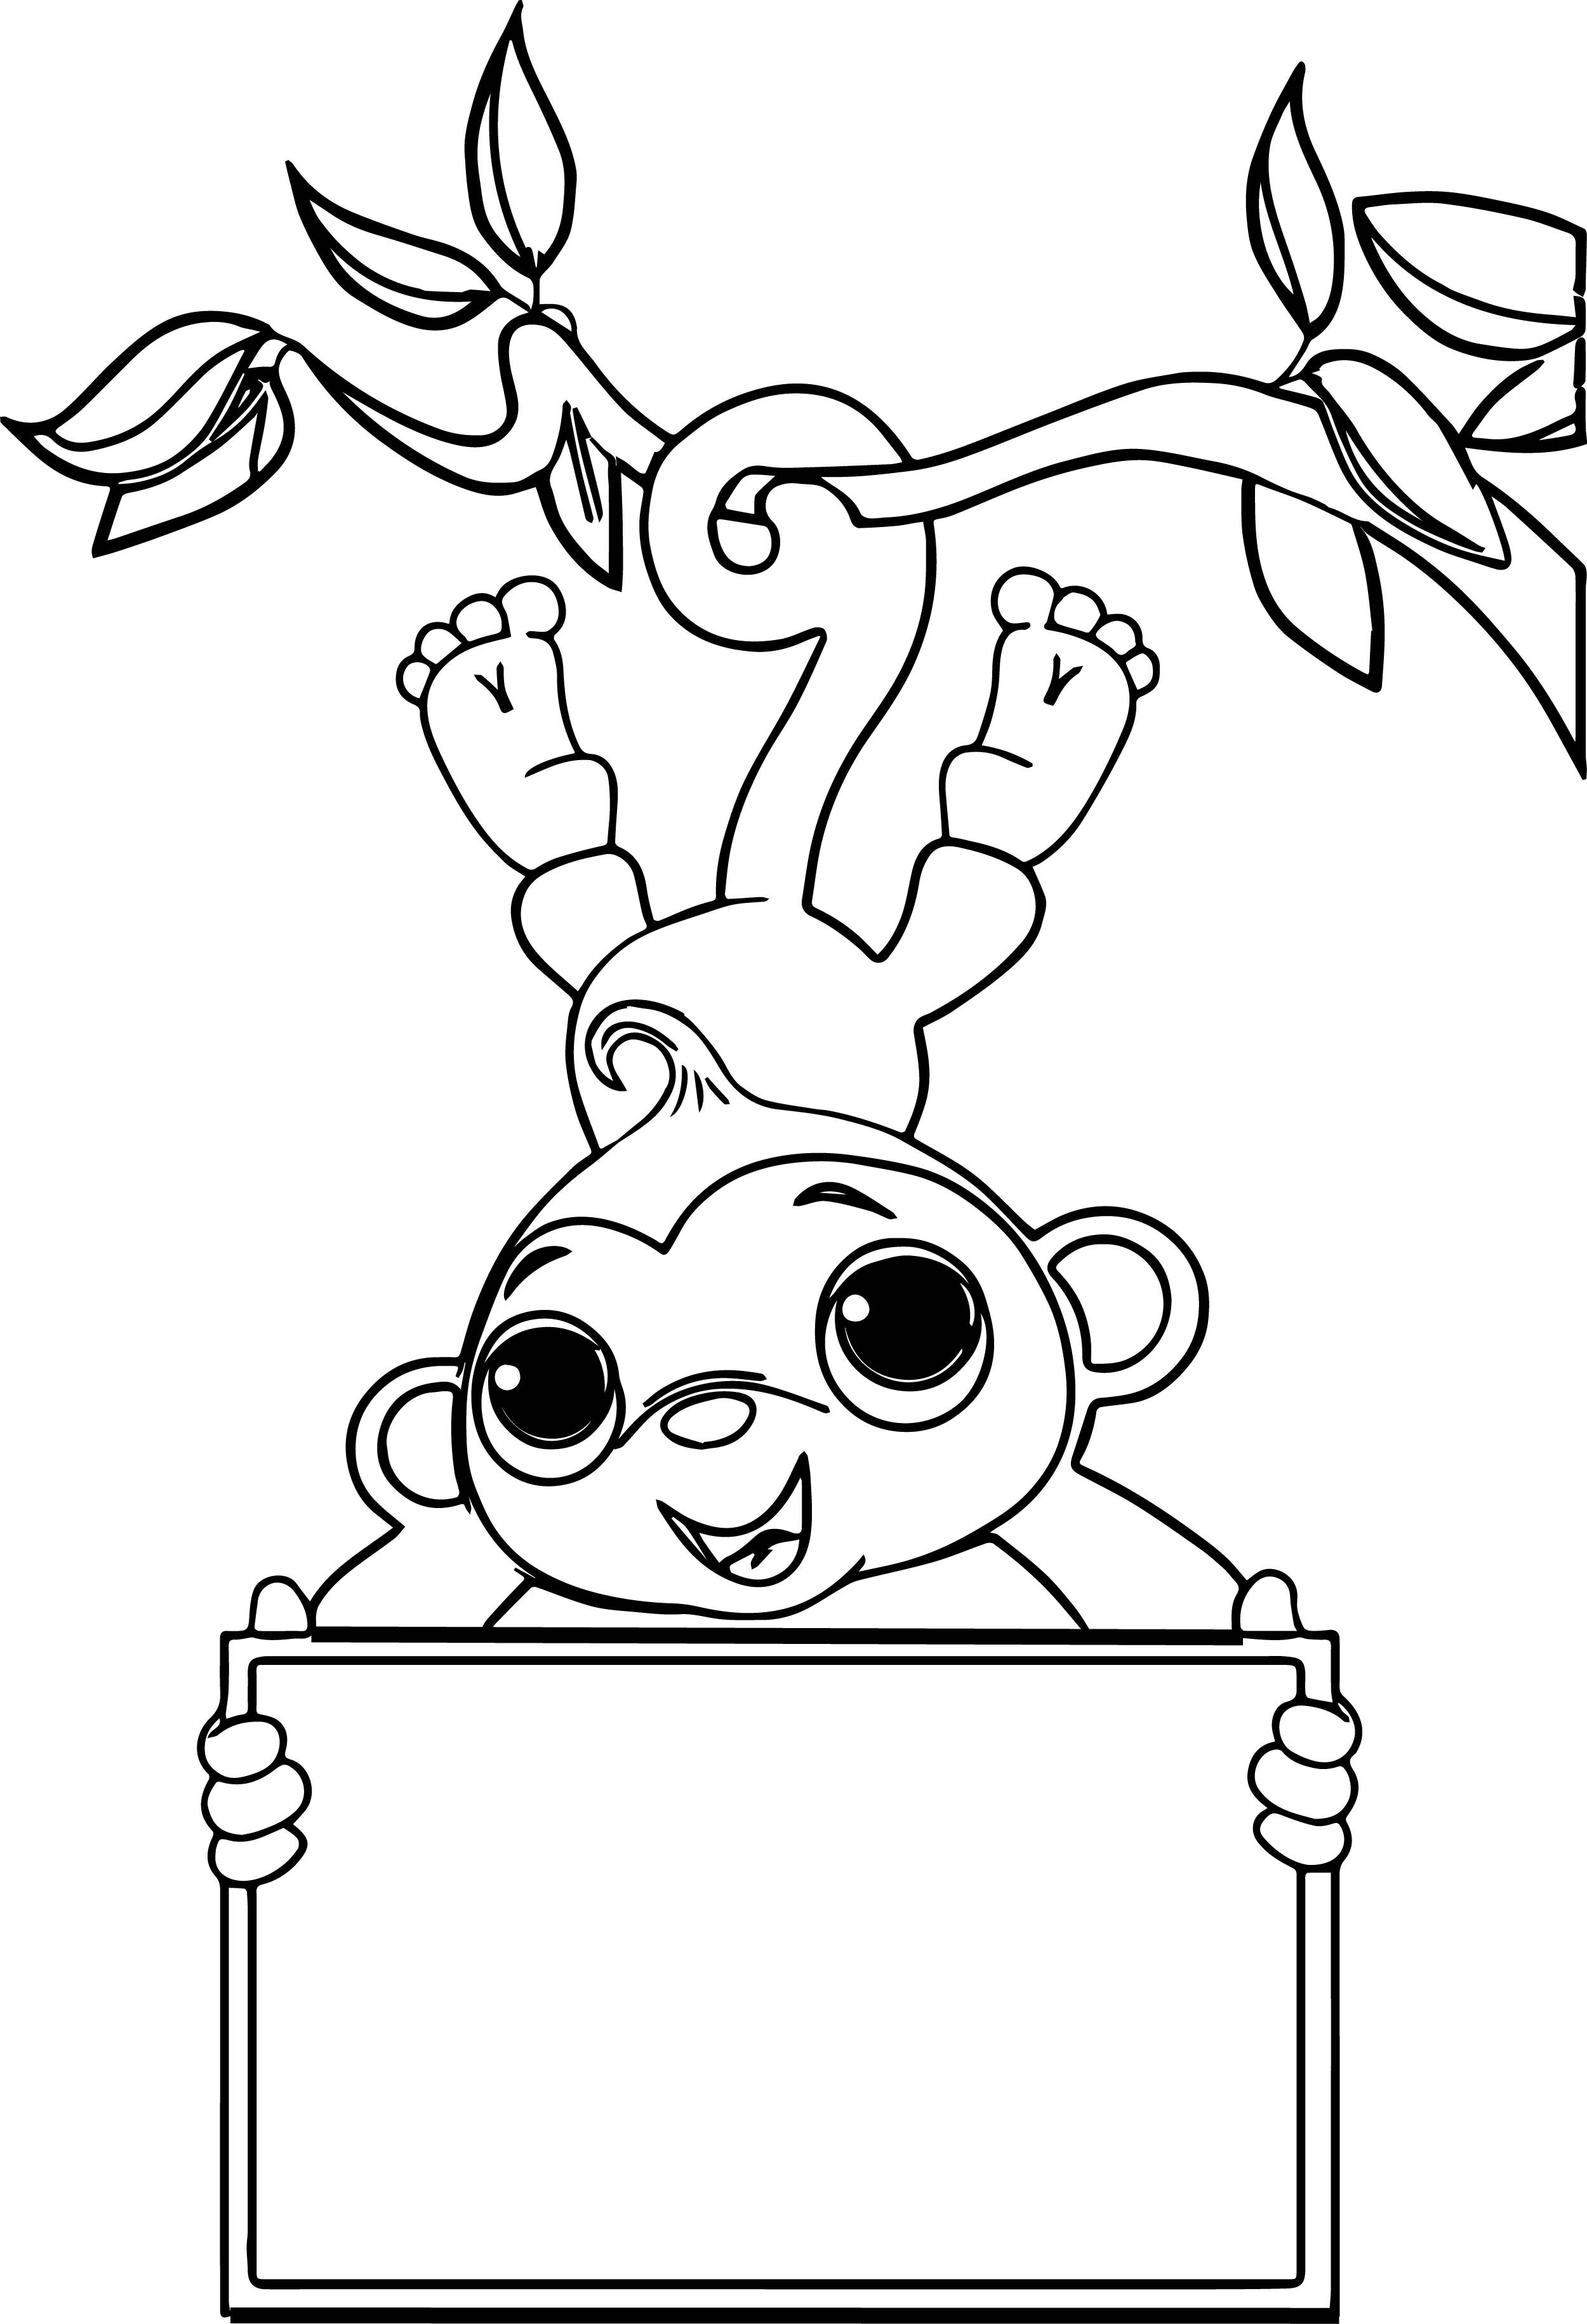 Zoo Free Sock Monkey Coloring Page | ePin – Free Graphic, Clipart ...